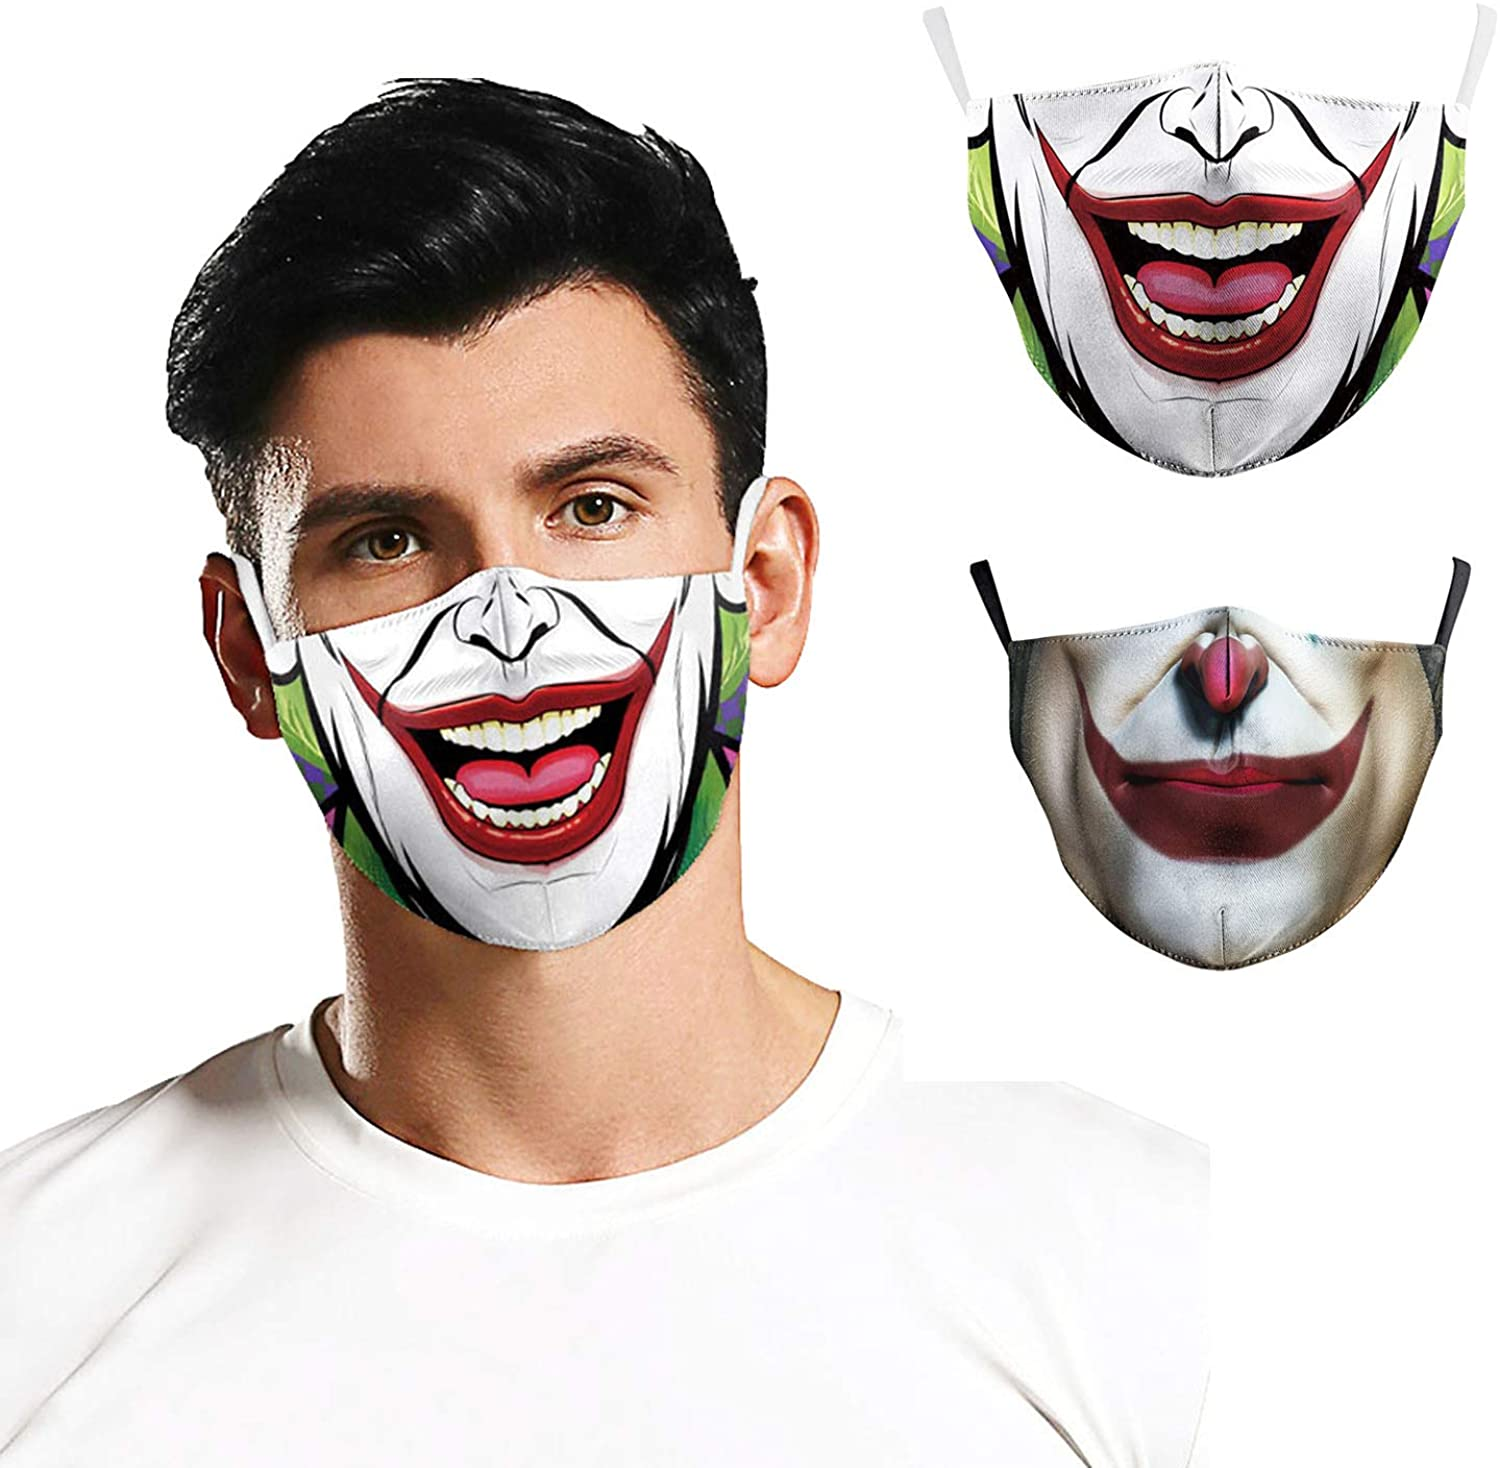 ZFCGEE Unisex 3D Prints Cotton Face Bandanas Reusable, Funny Halloween Adjustable Ear Loops Face Covering Party Accessories